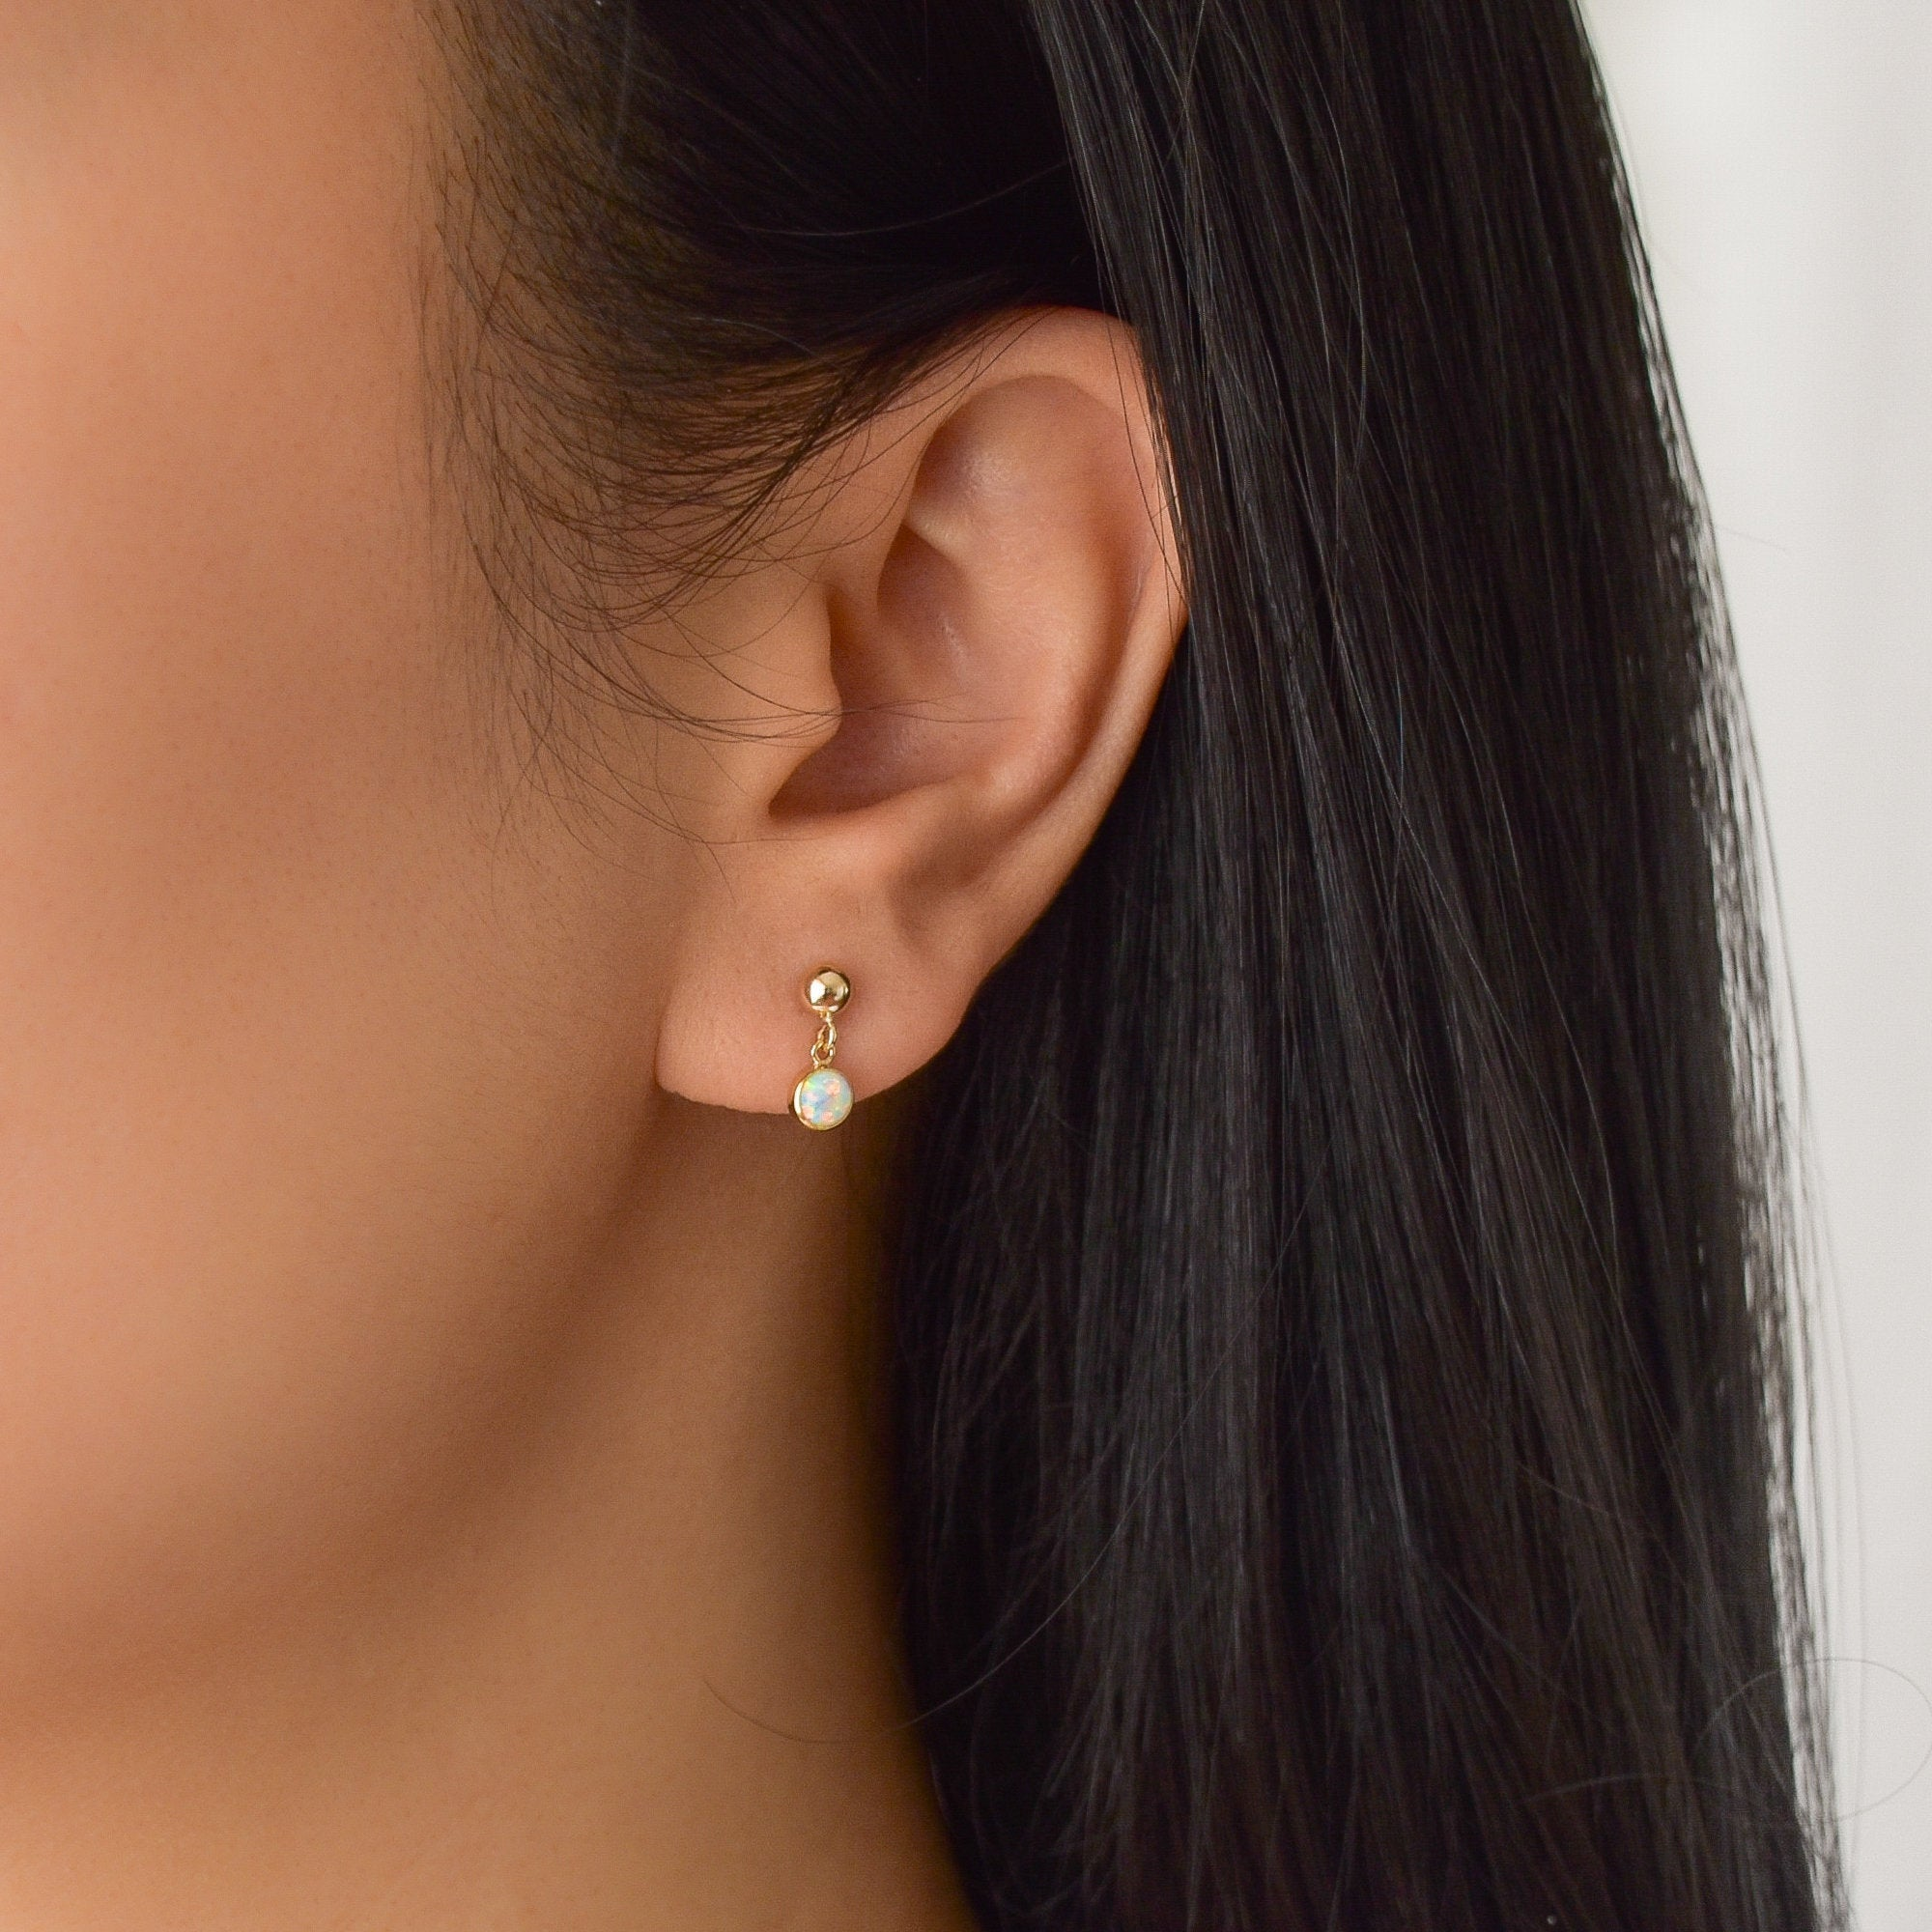 Dainty Opal Earrings